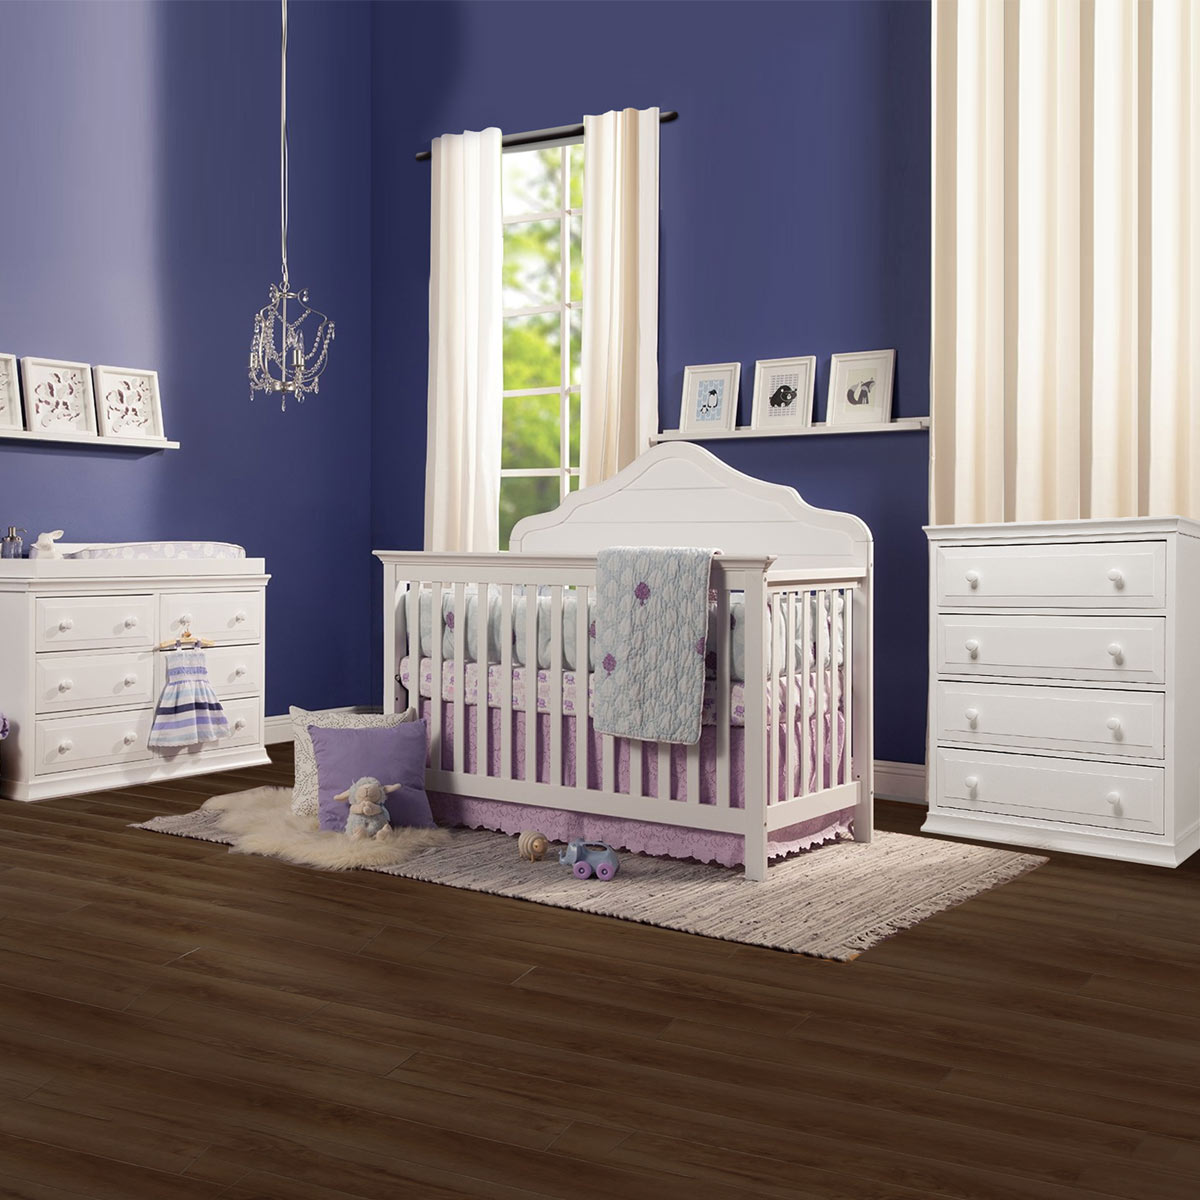 davinci flora 2 piece nursery set 4 in 1 convertible crib signature 4 drawer tall dresser and 6 drawer double dresser in white free shipping